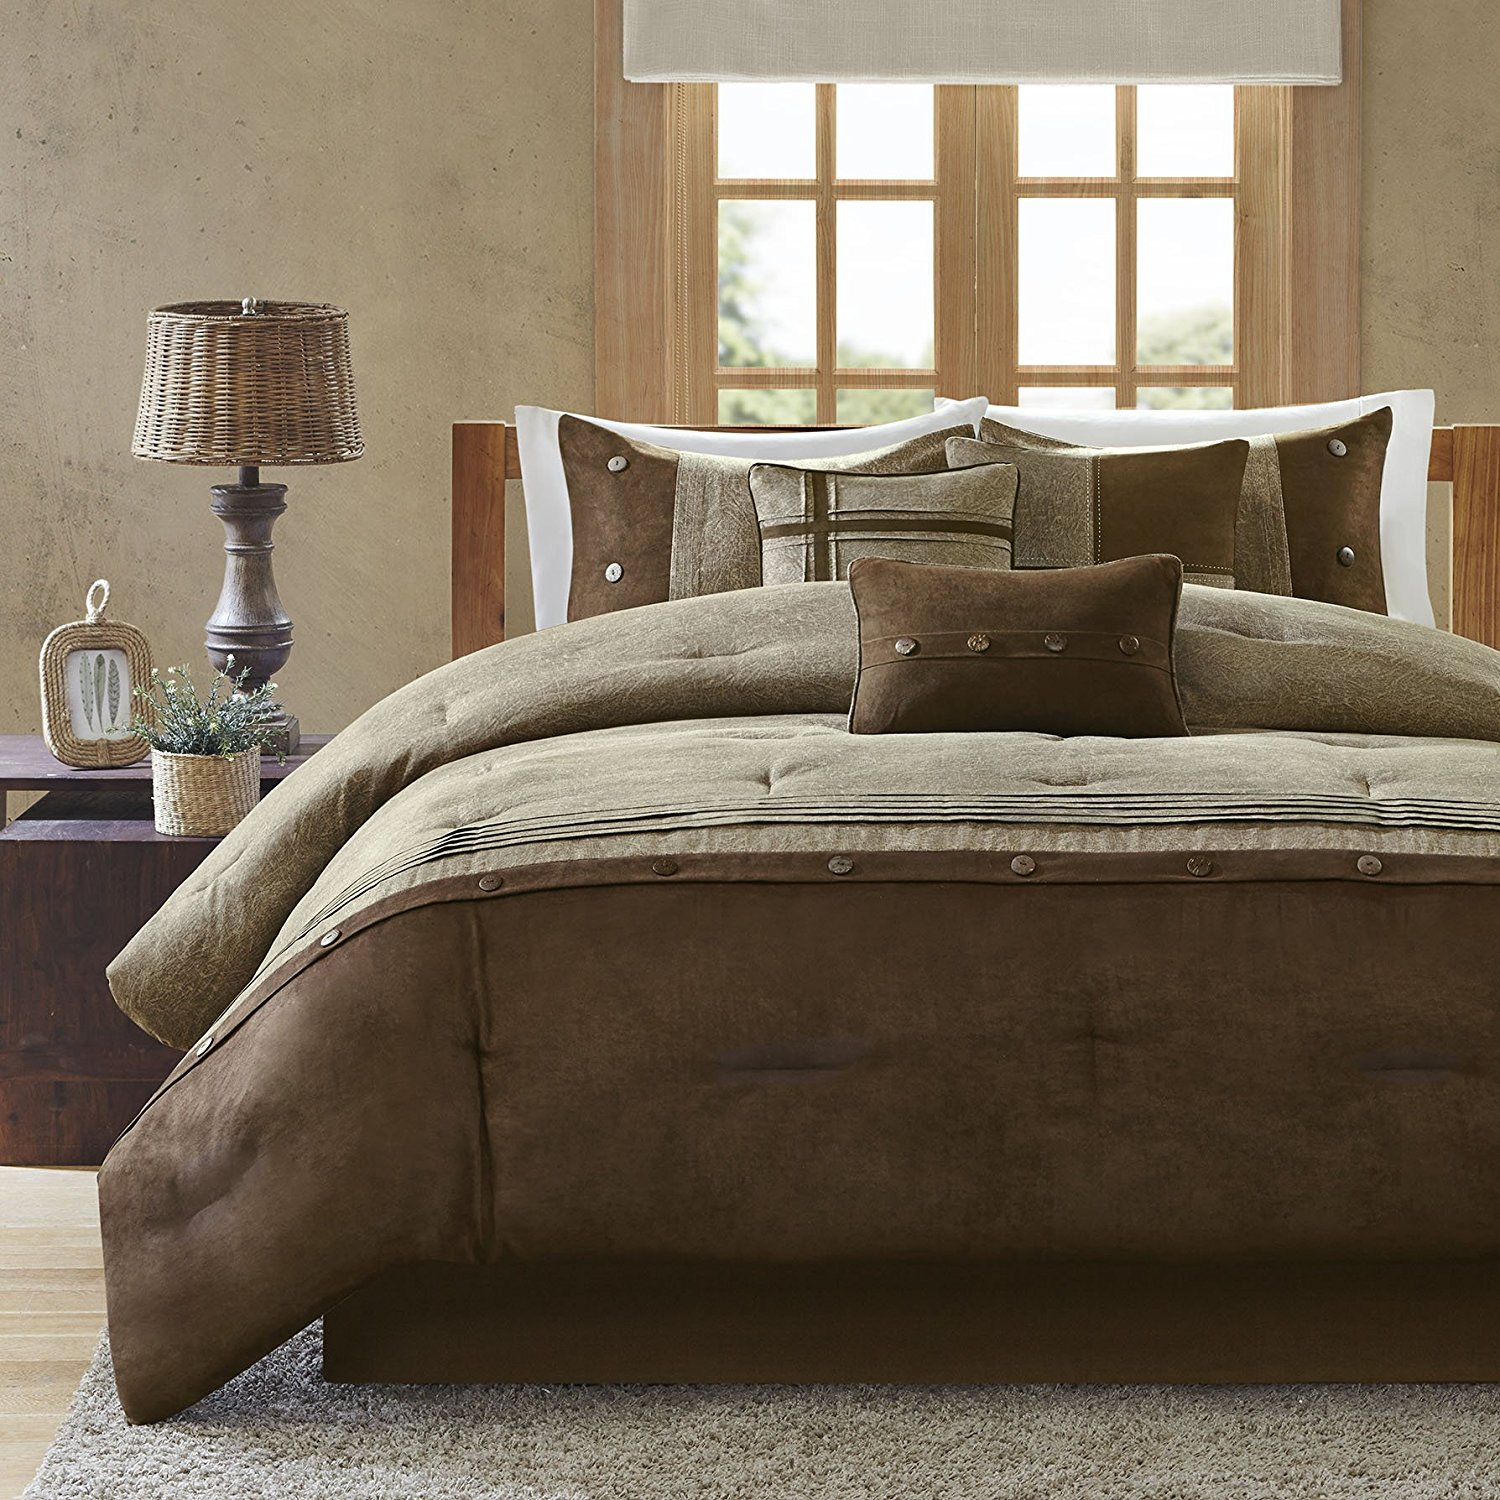 Image of: Brown Comforter Sets Walmart